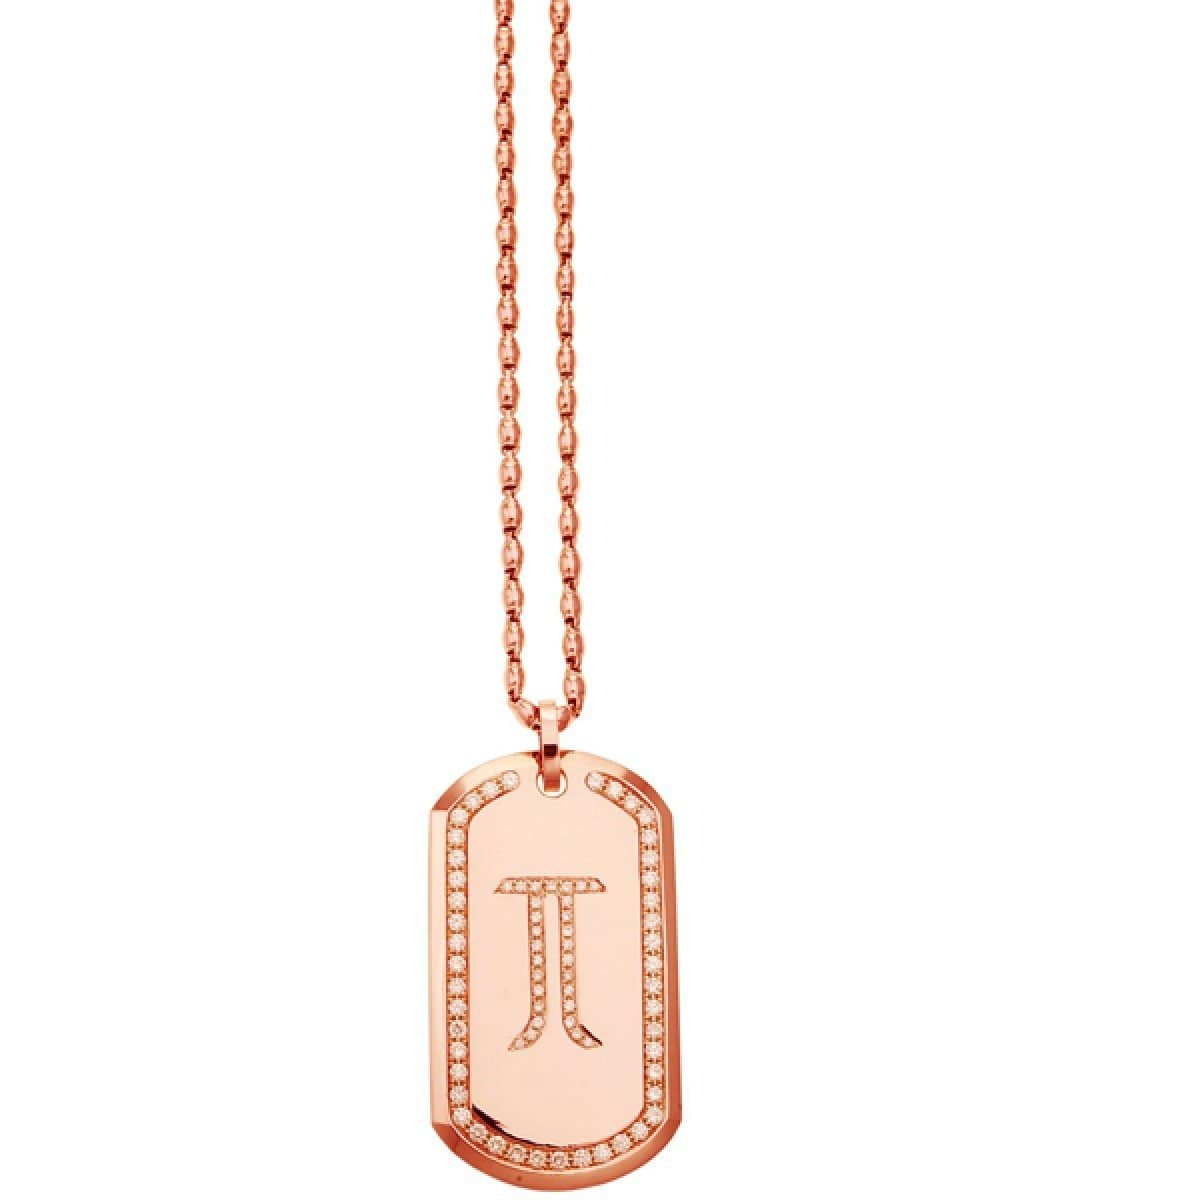 18 Karat Amber Hue Gold Gold Dog Tag Necklace - Red Gold®